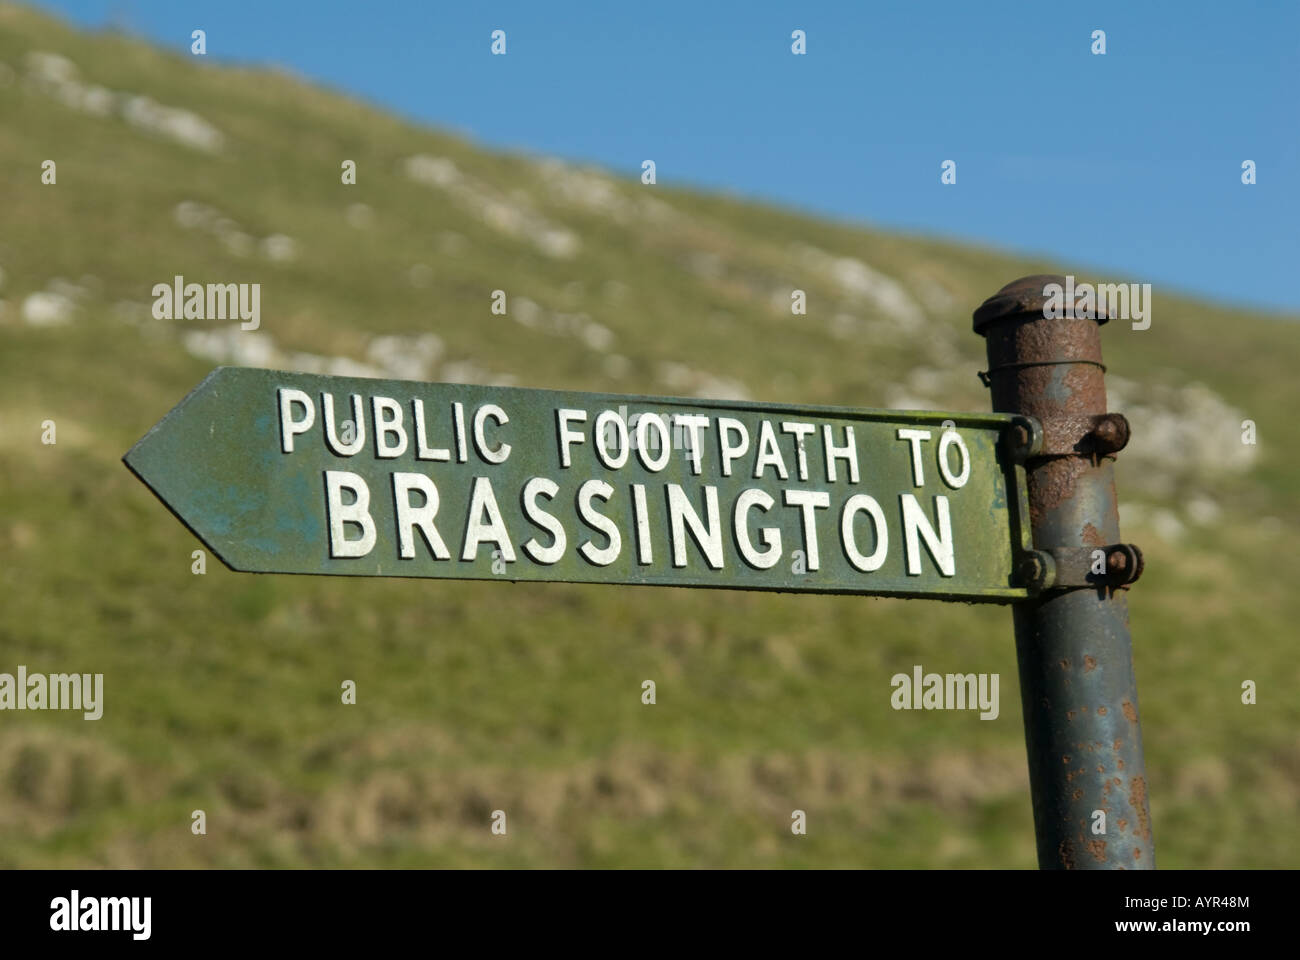 public footpath sign to brassington in the derbyshire countryside - Stock Image